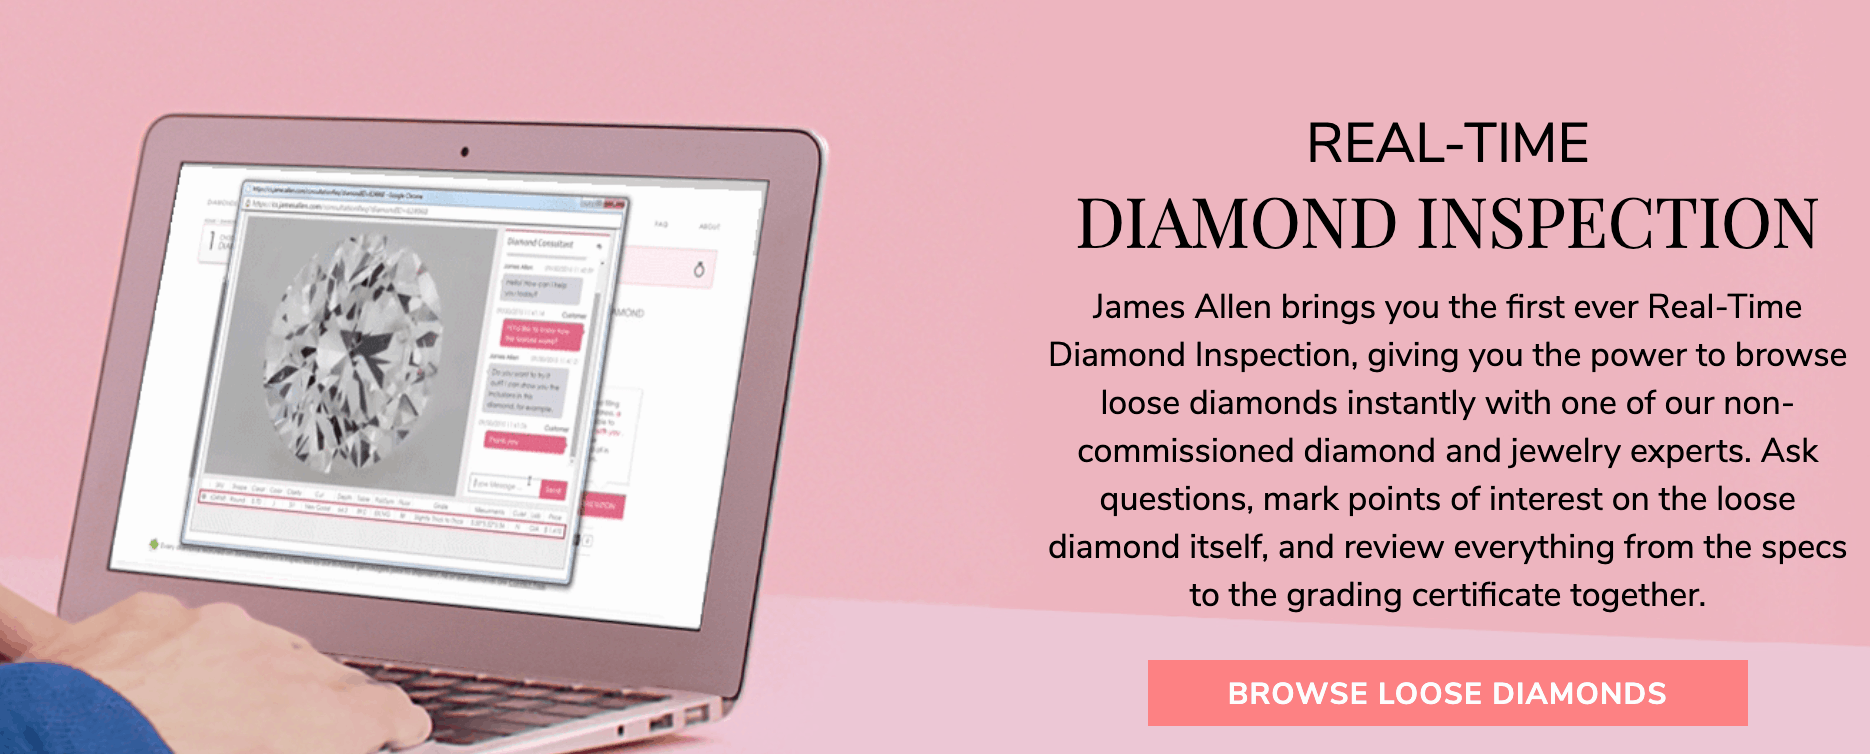 James Allen diamond inspection